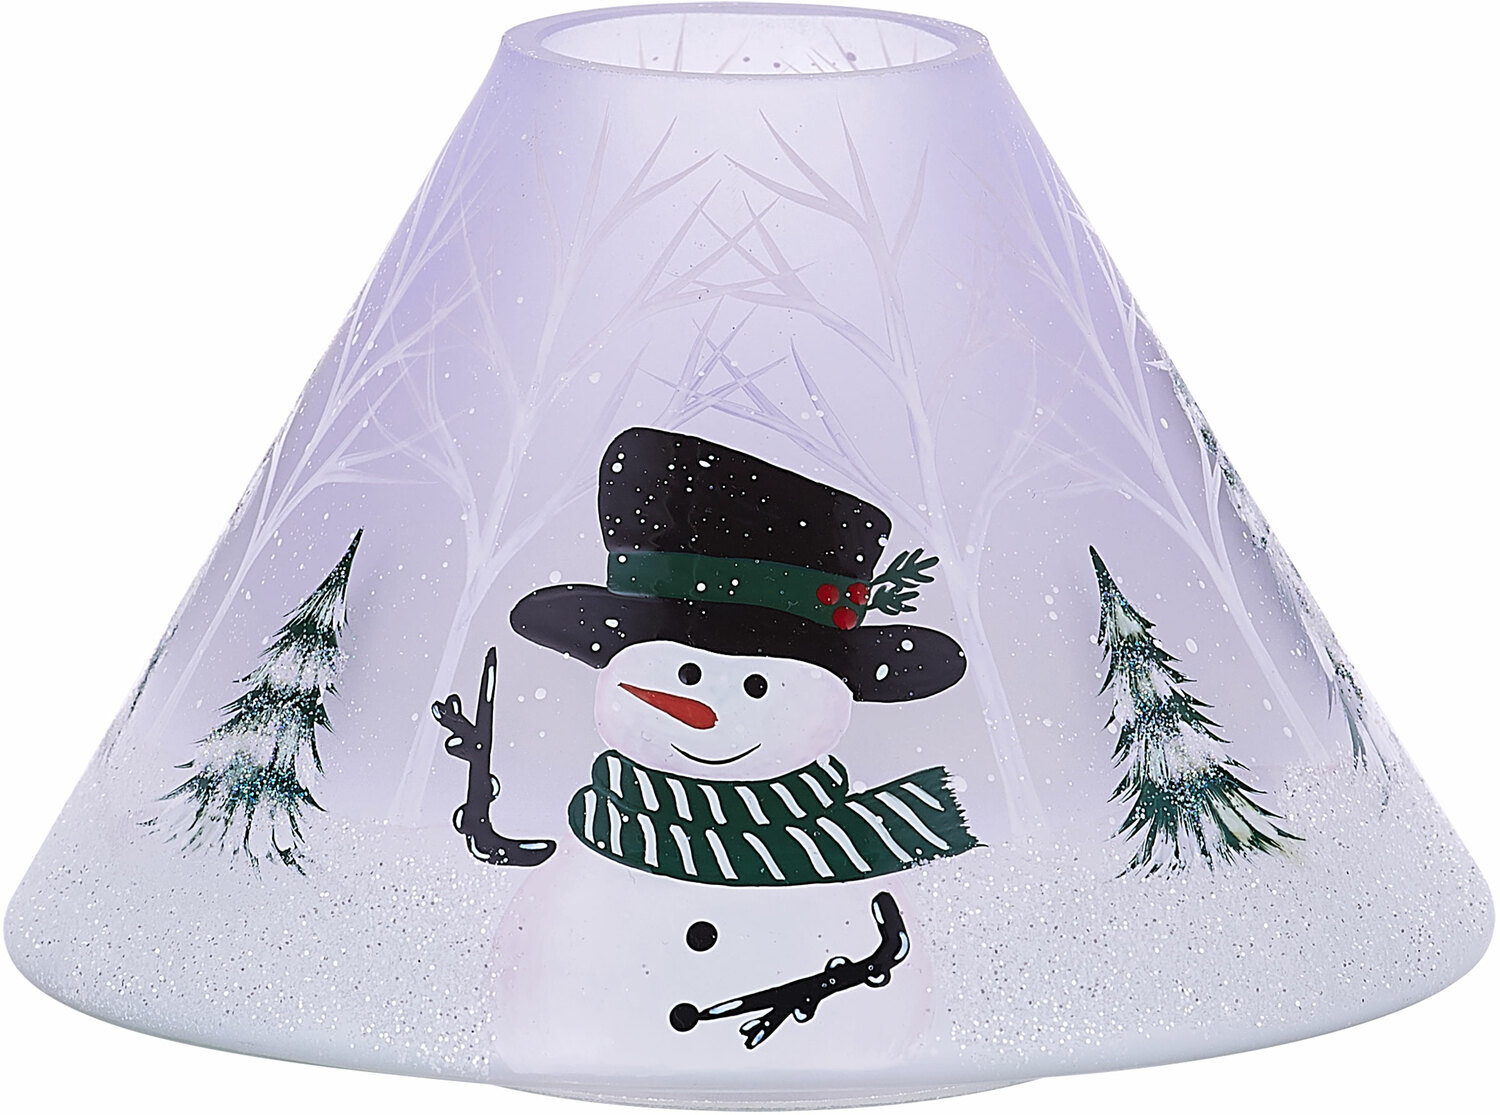 Snowman by Candle Decor - Snowman - Large Candle Shade